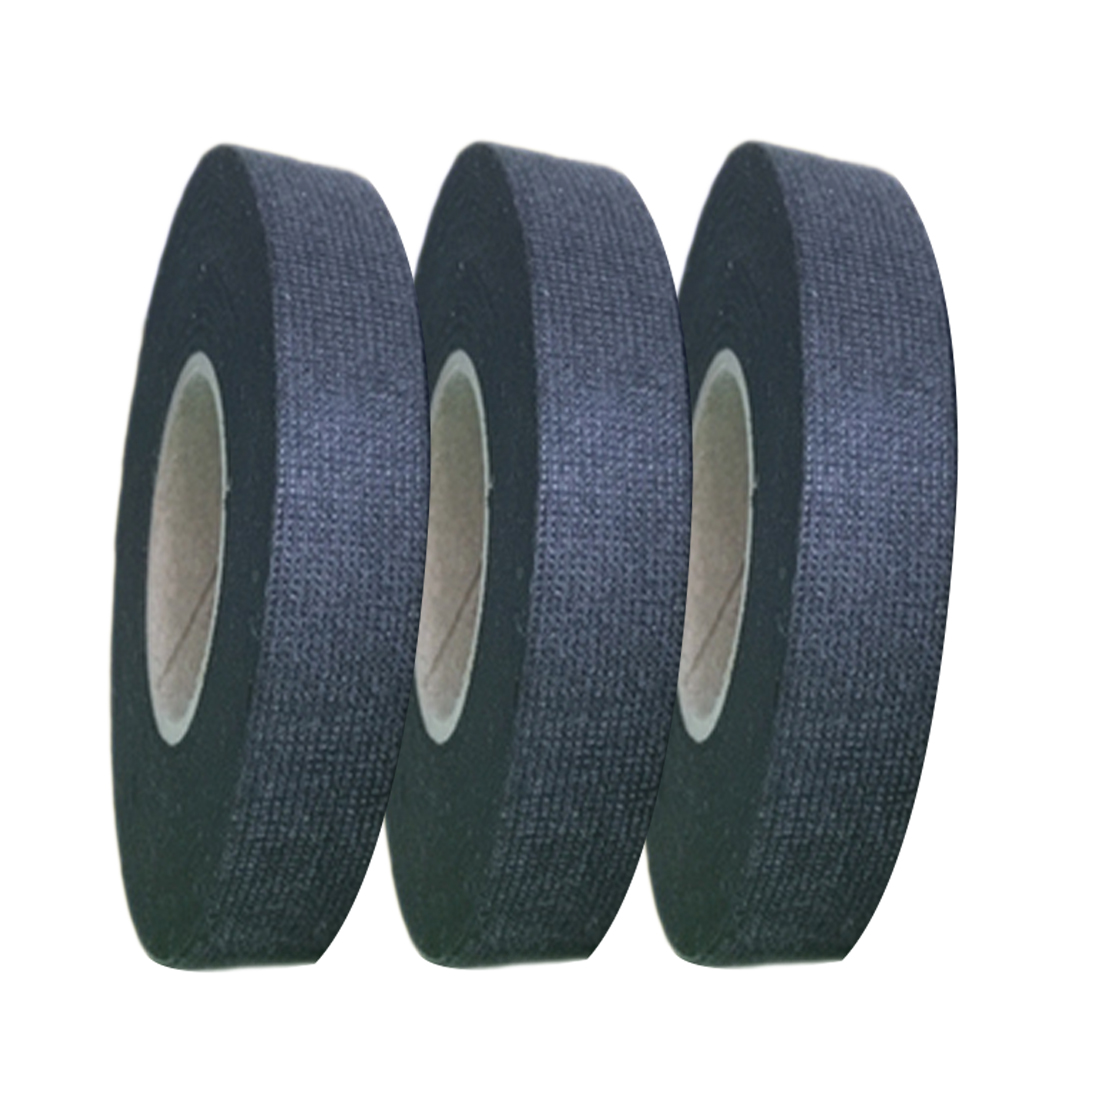 New 1pc Heat-resistant 19mm x 15m Adhesive Flannel Fabric Cloth Tape Cable Harness Wiring For Car Auto Repair Parts Tool